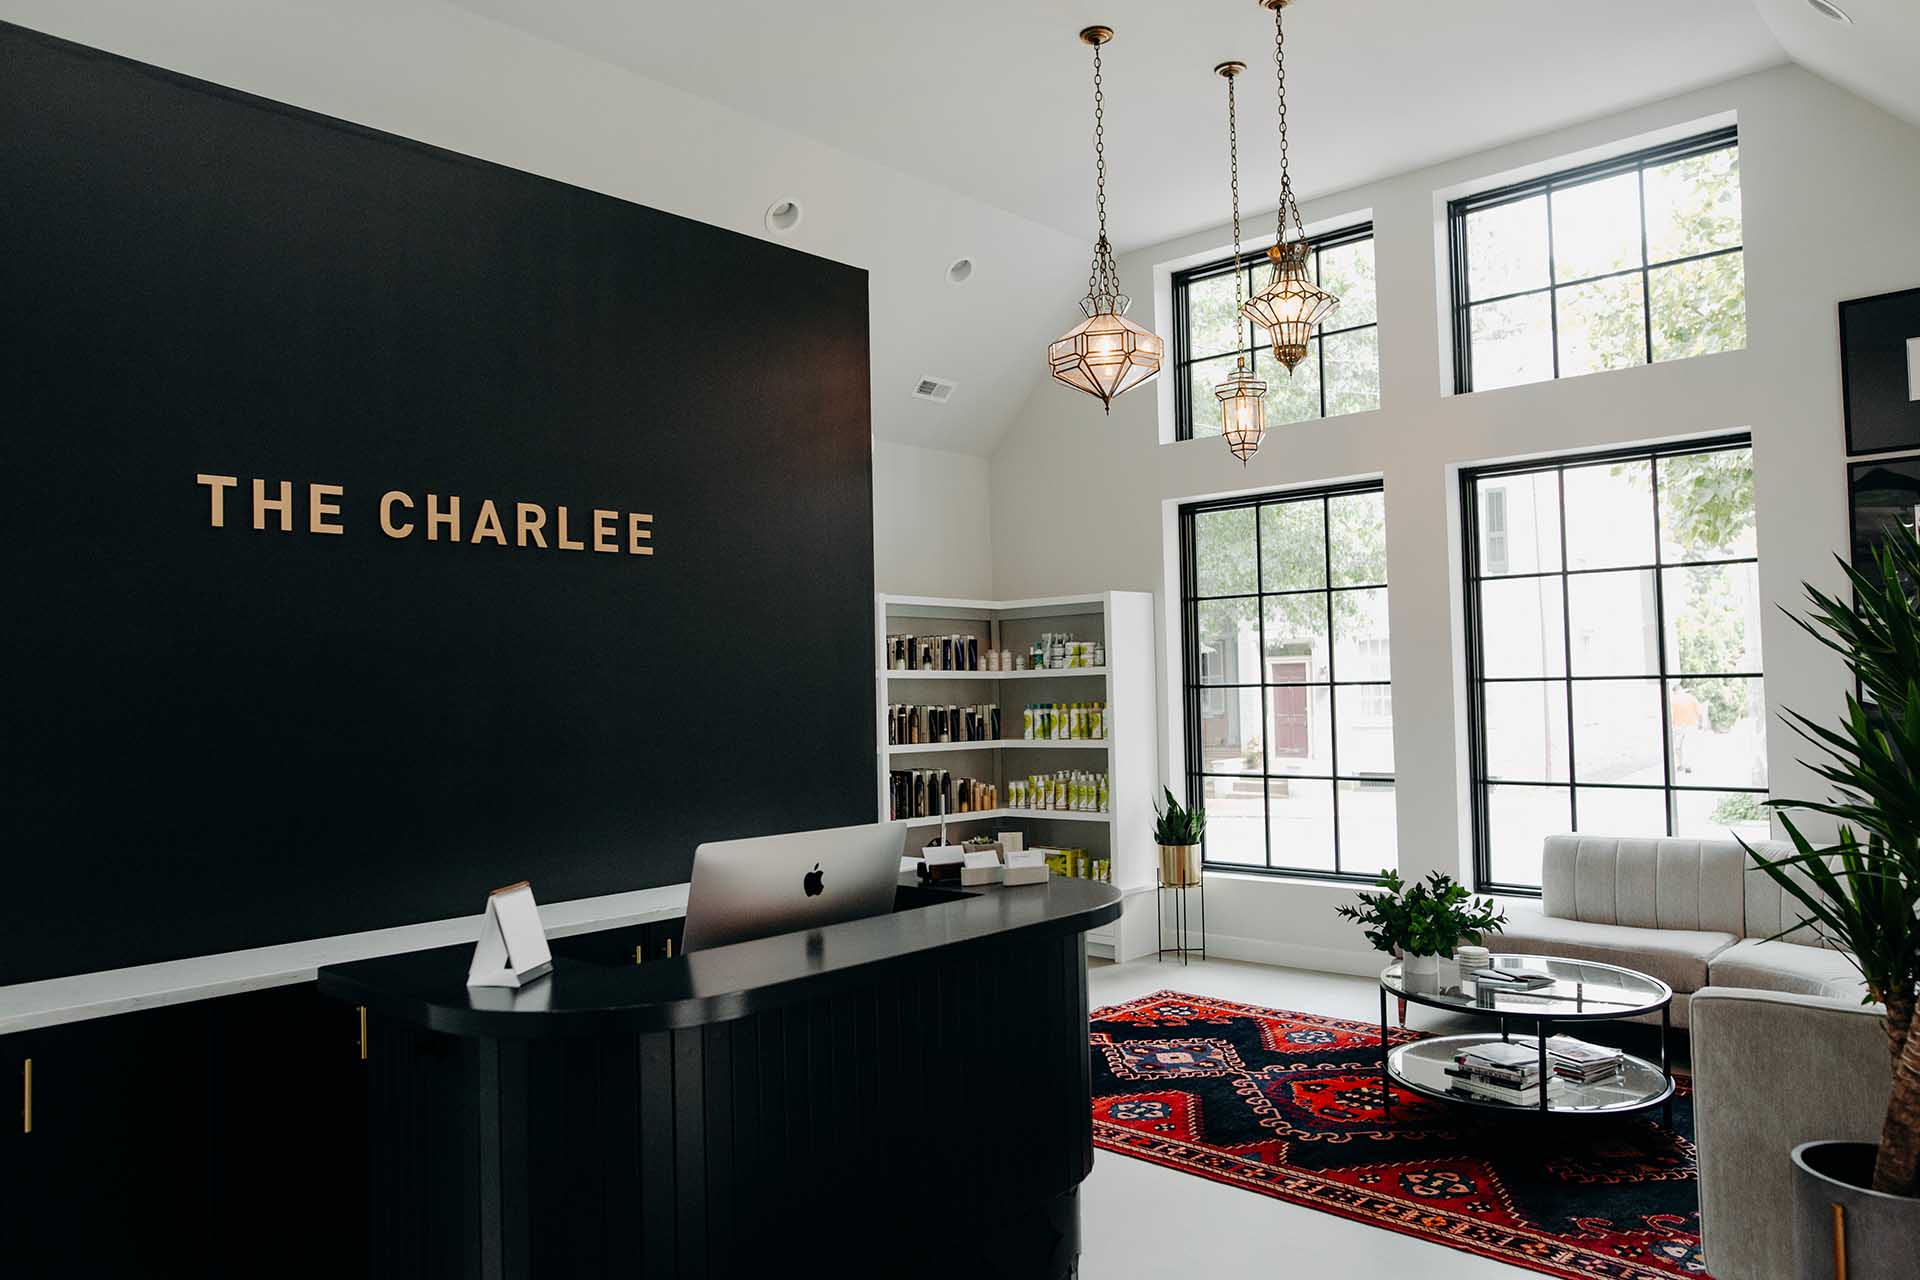 The Charlee reception and waiting area